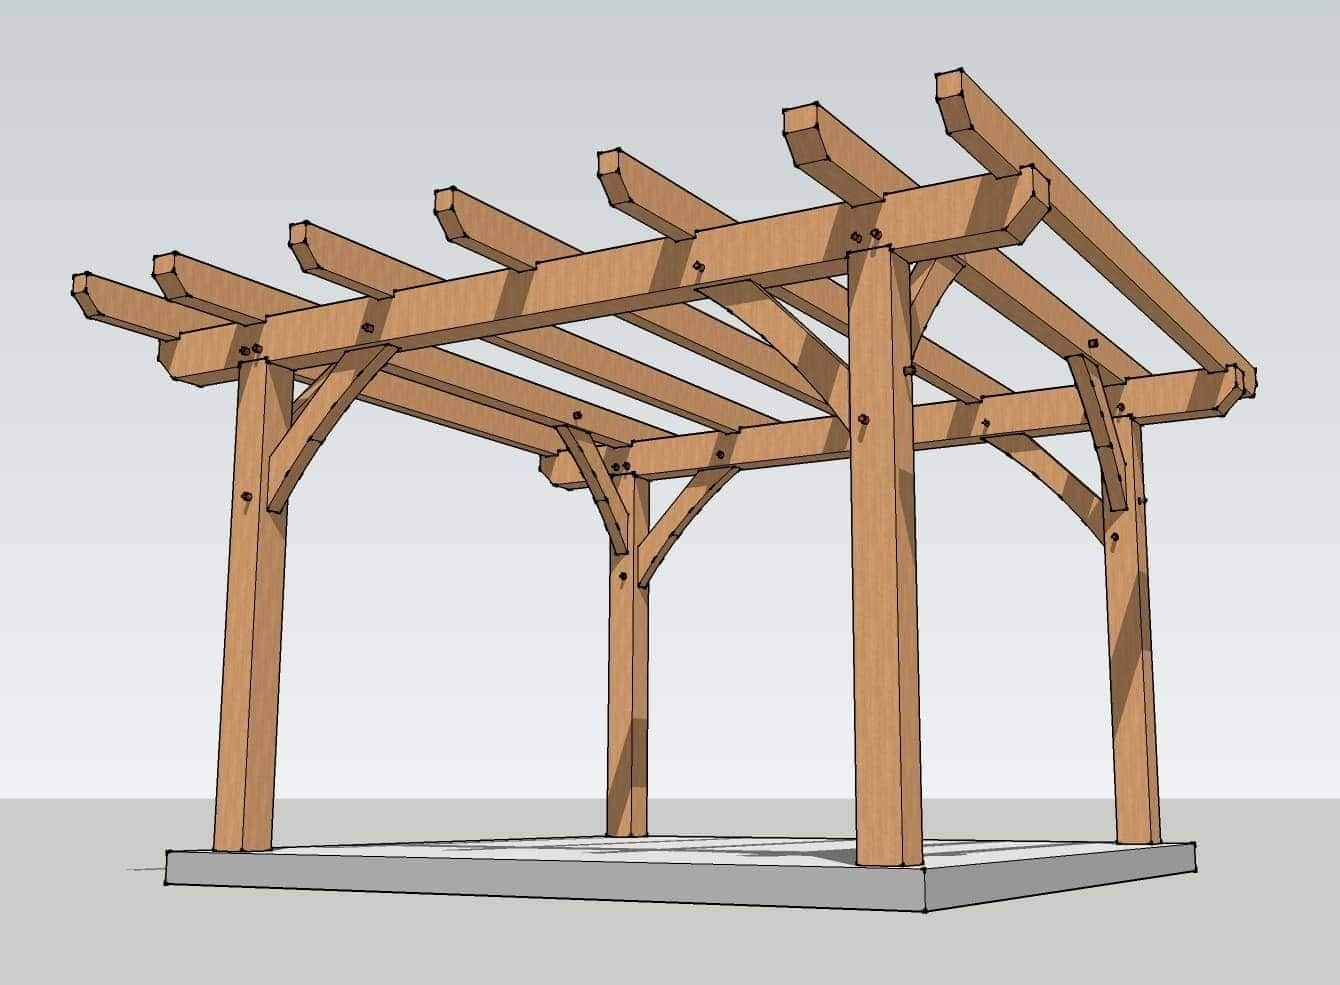 12x12 timber frame pergola plan timber frame hq. Black Bedroom Furniture Sets. Home Design Ideas